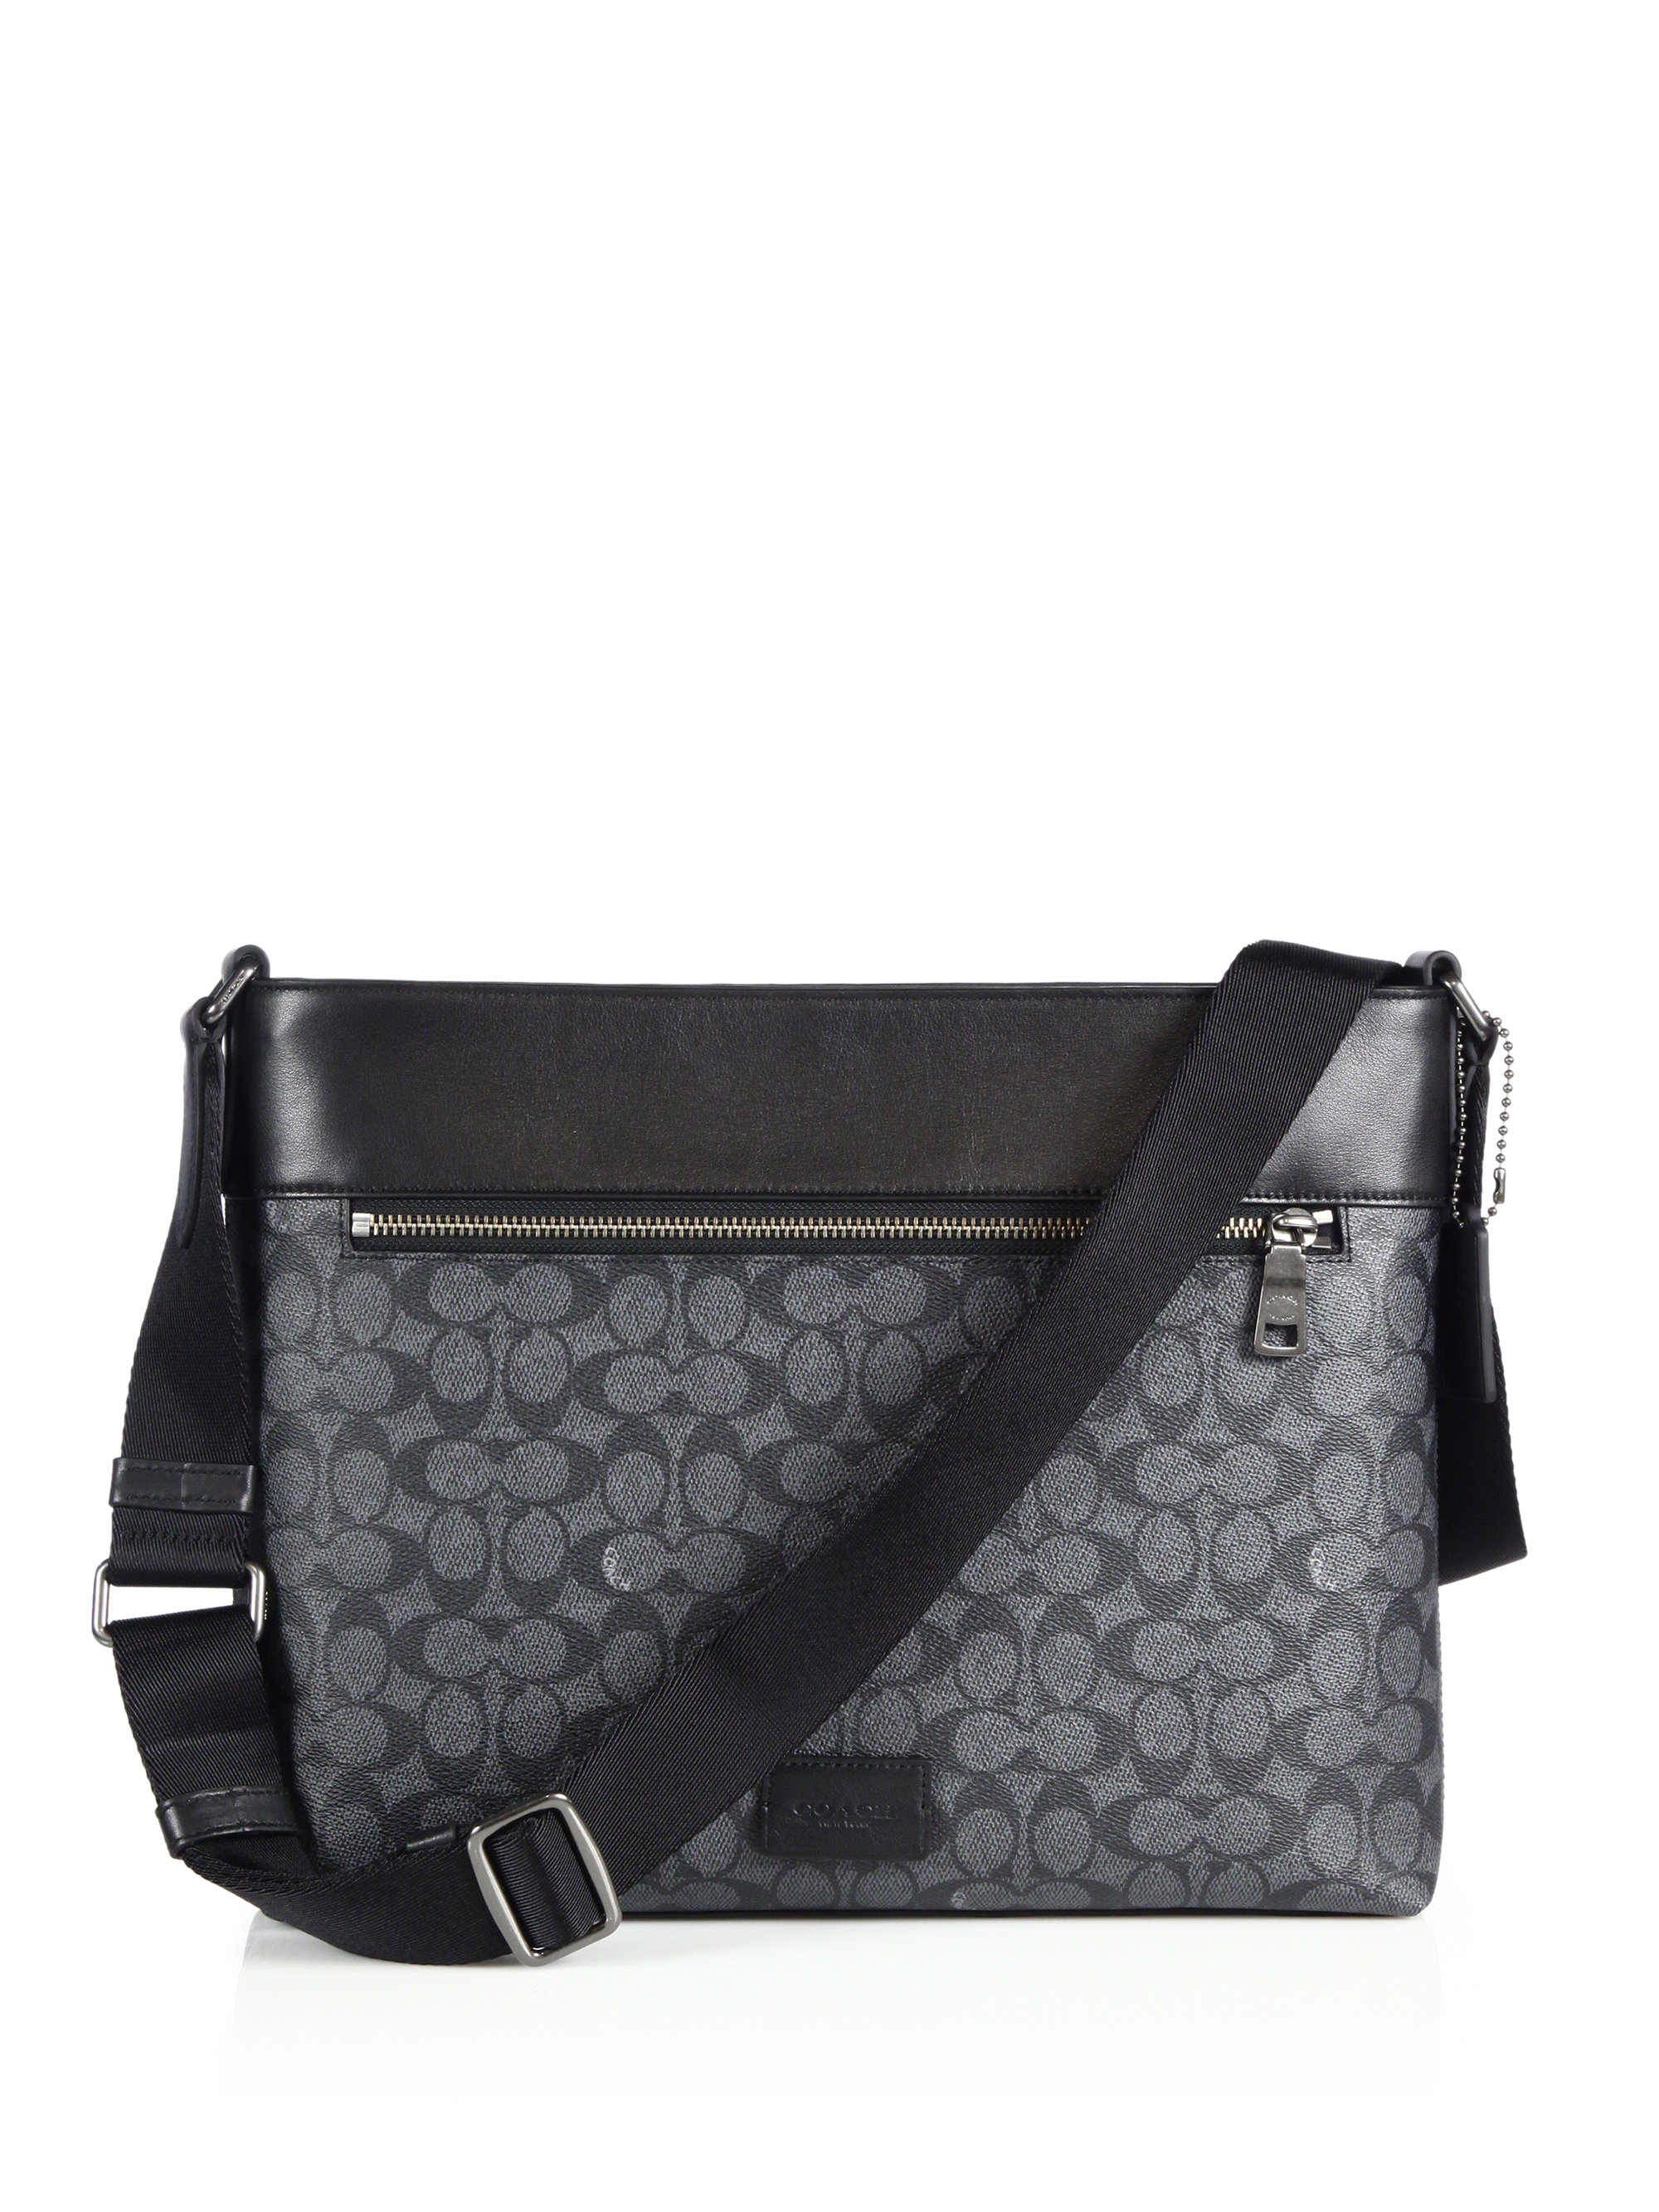 coach bag black and gray pm6x  Gallery